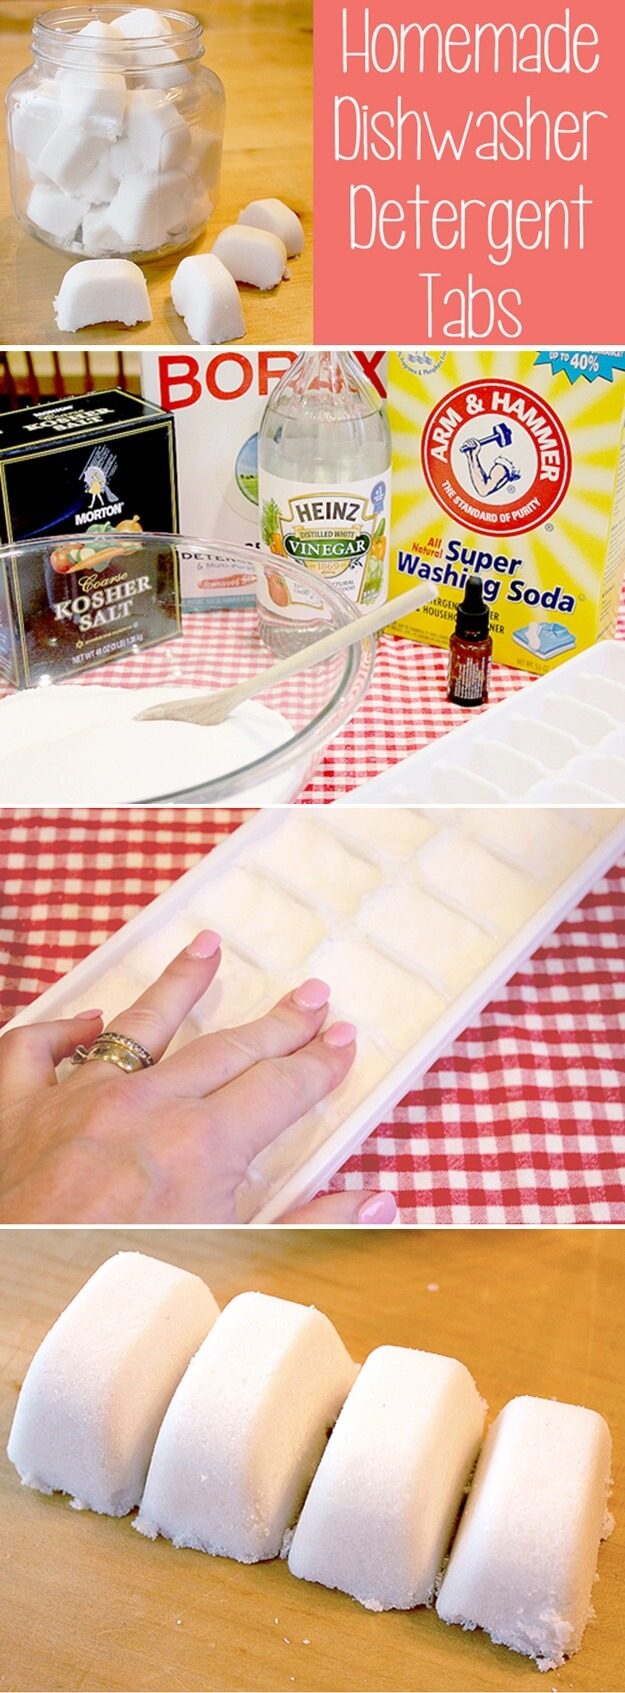 Homemade-Dishwasher-Detergent-Tabs-k4craft